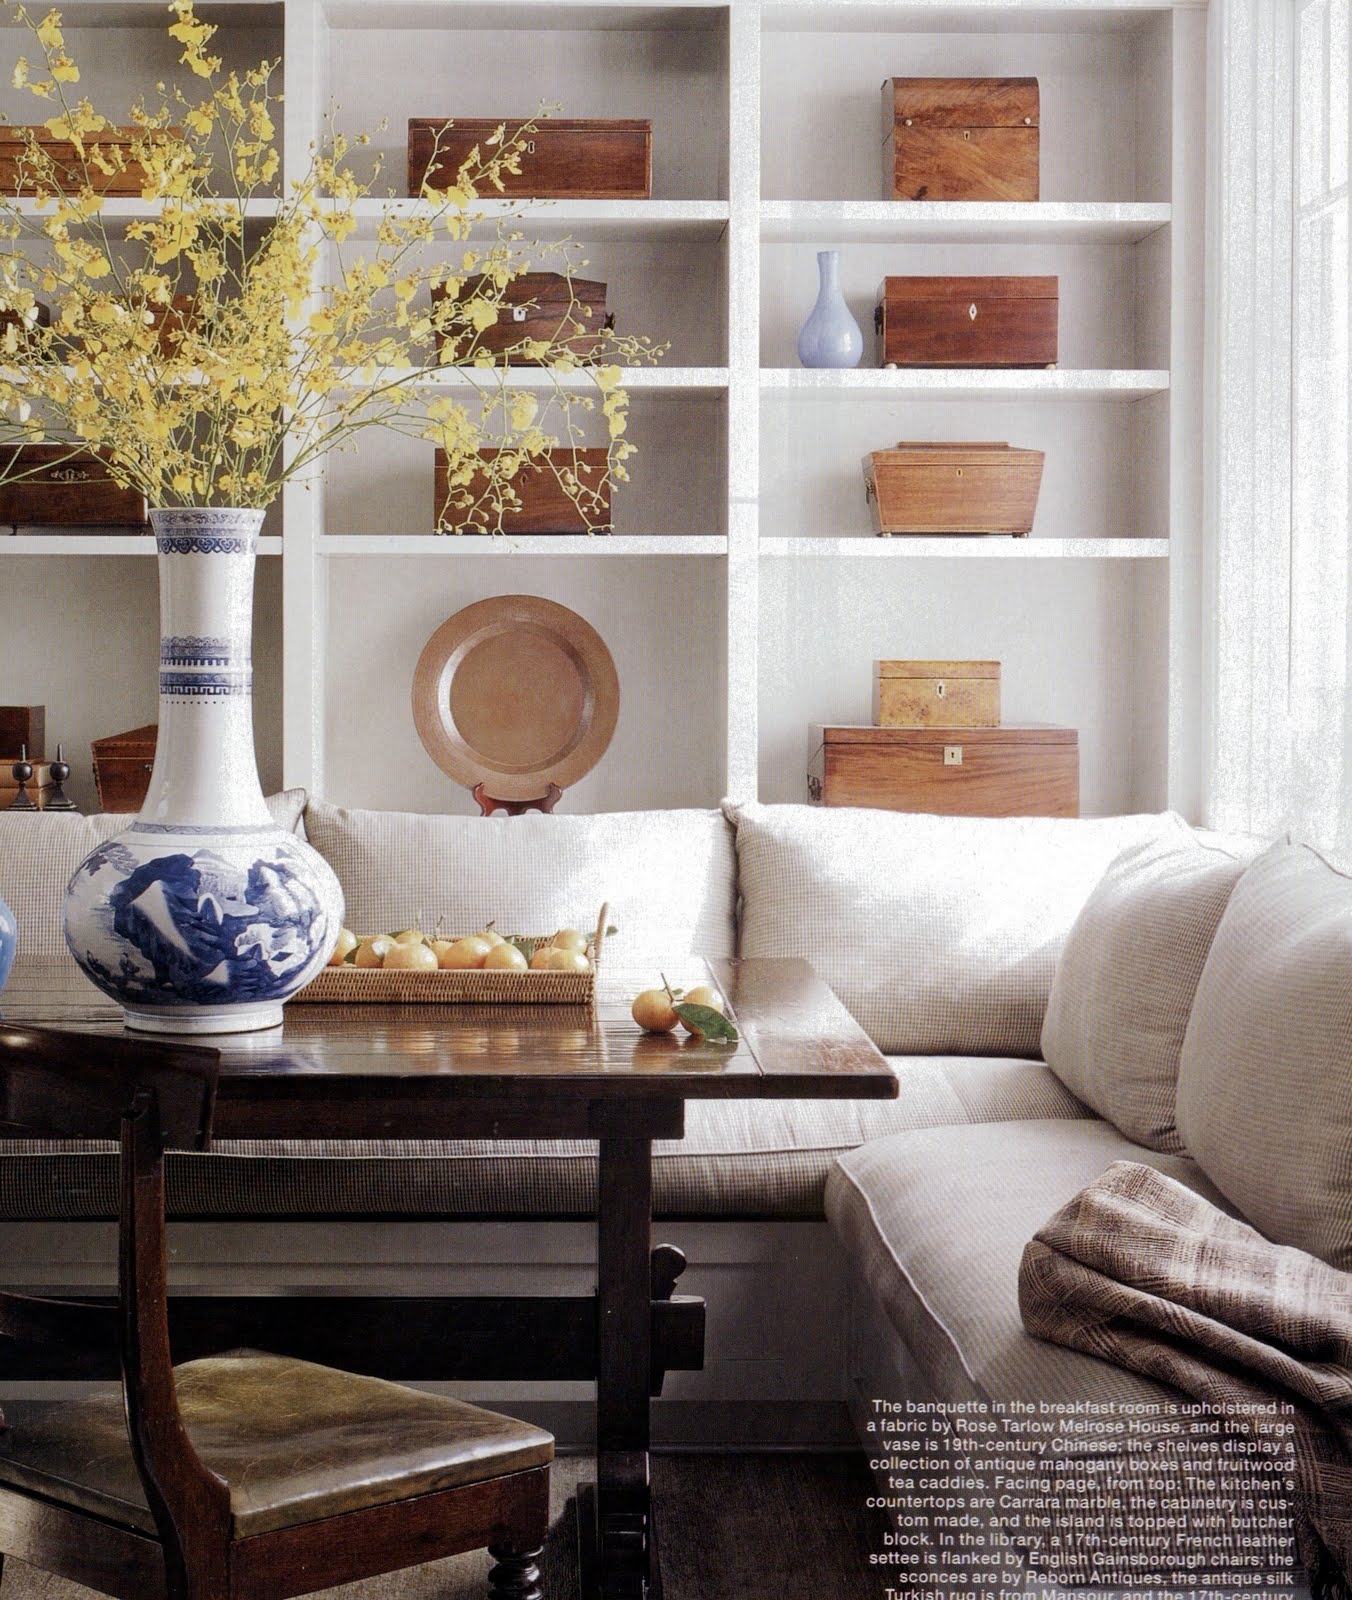 Elle Decor Bookshelves: AESTHETICALLY THINKING: BEAUTIFUL BANQUETTES